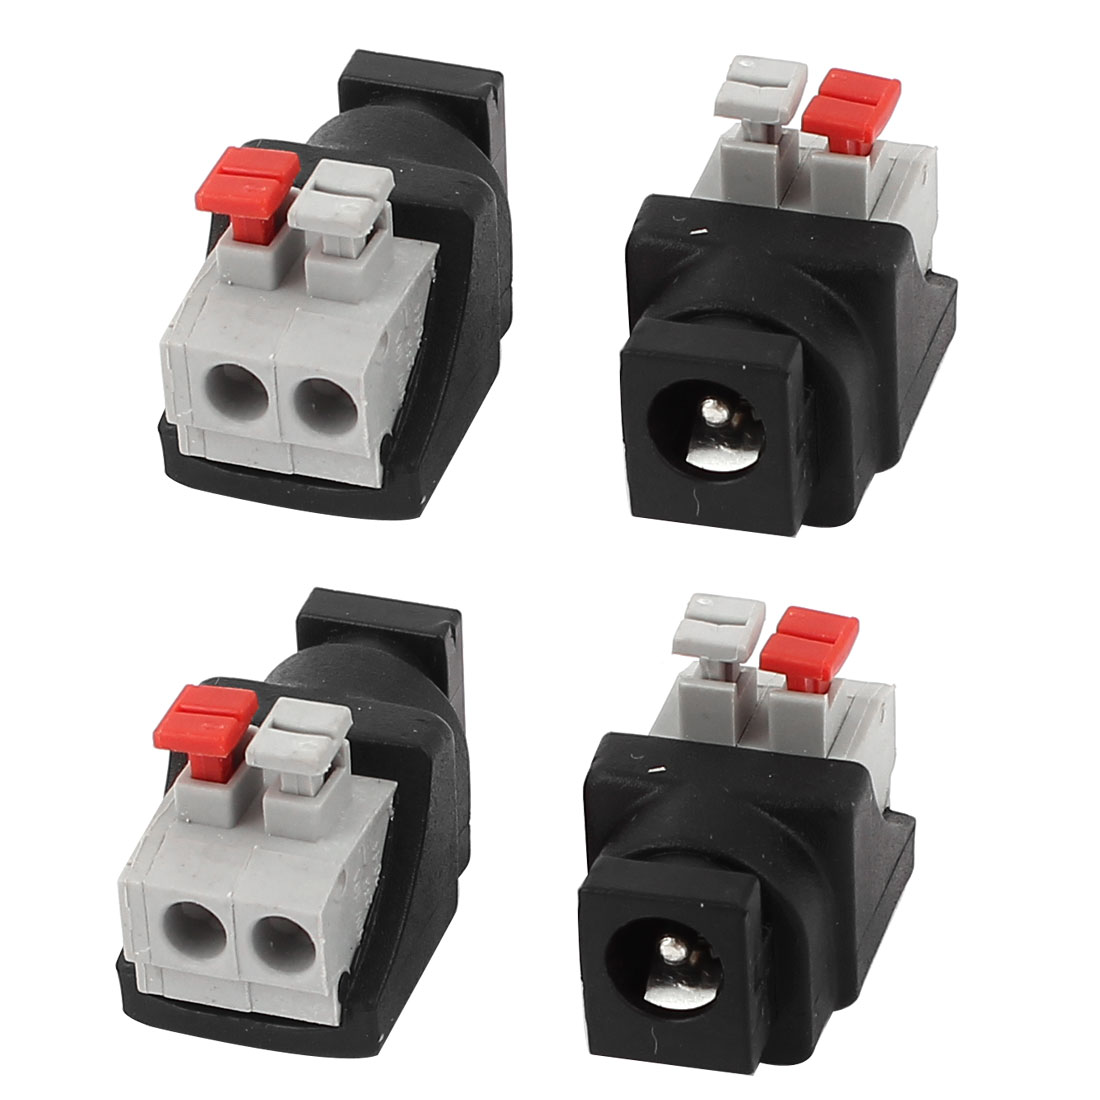 4 Pcs 5.5x2.1mm DC Power Female Spring Terminal Adapter Connector for CCTV Camera